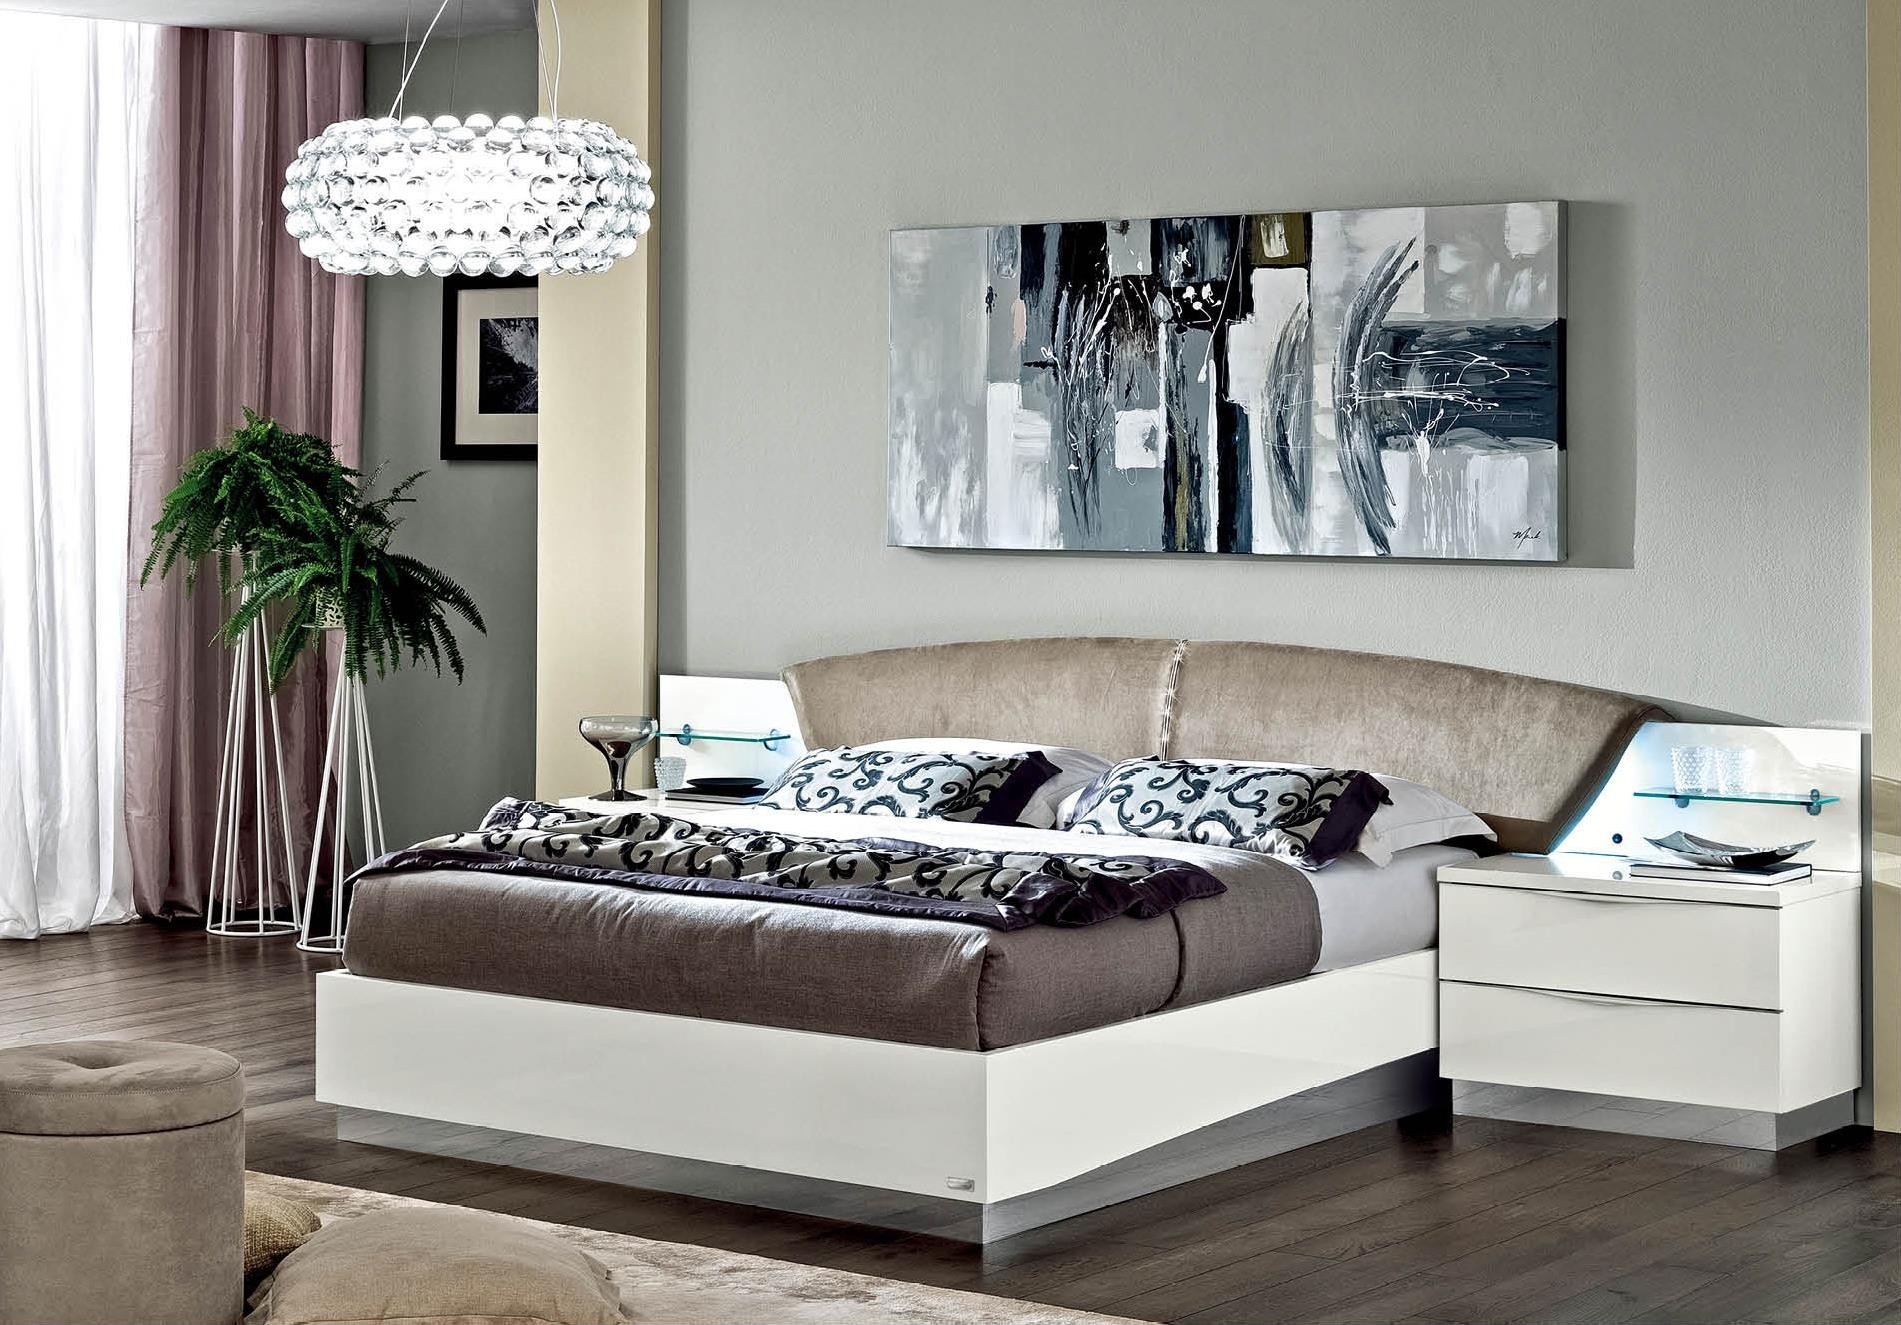 Best modern furniture stores in massachusetts - Onda Bedroom Set By Esf Buy From Nova Interiors Contemporary Furniture Store Boston Ma Contemporary Furniture Store In Boston Ma